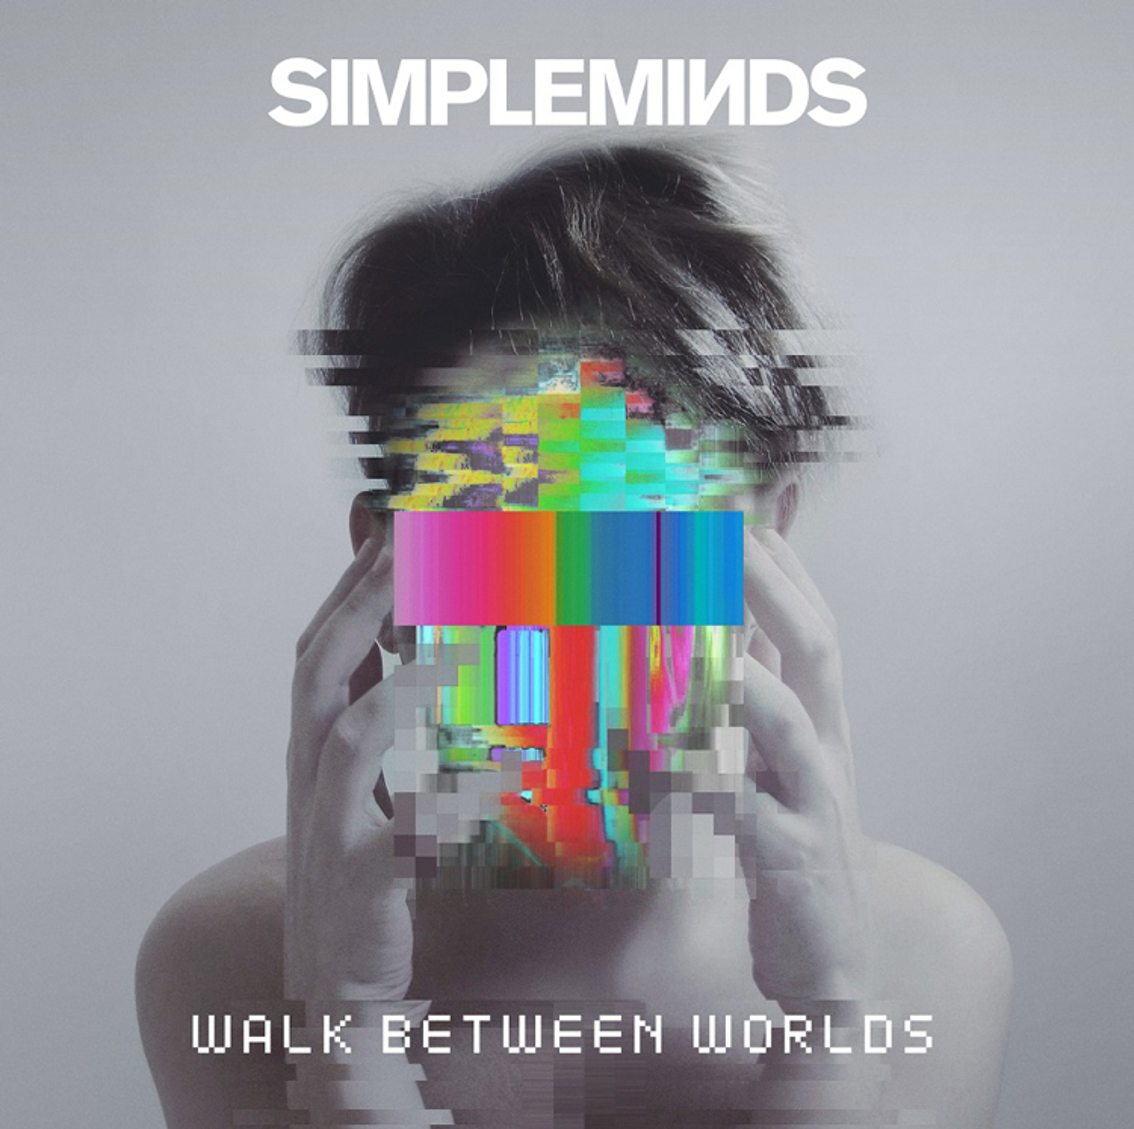 Simple Minds returns with new album in February:'Walk Between Worlds' - listen to the trailer